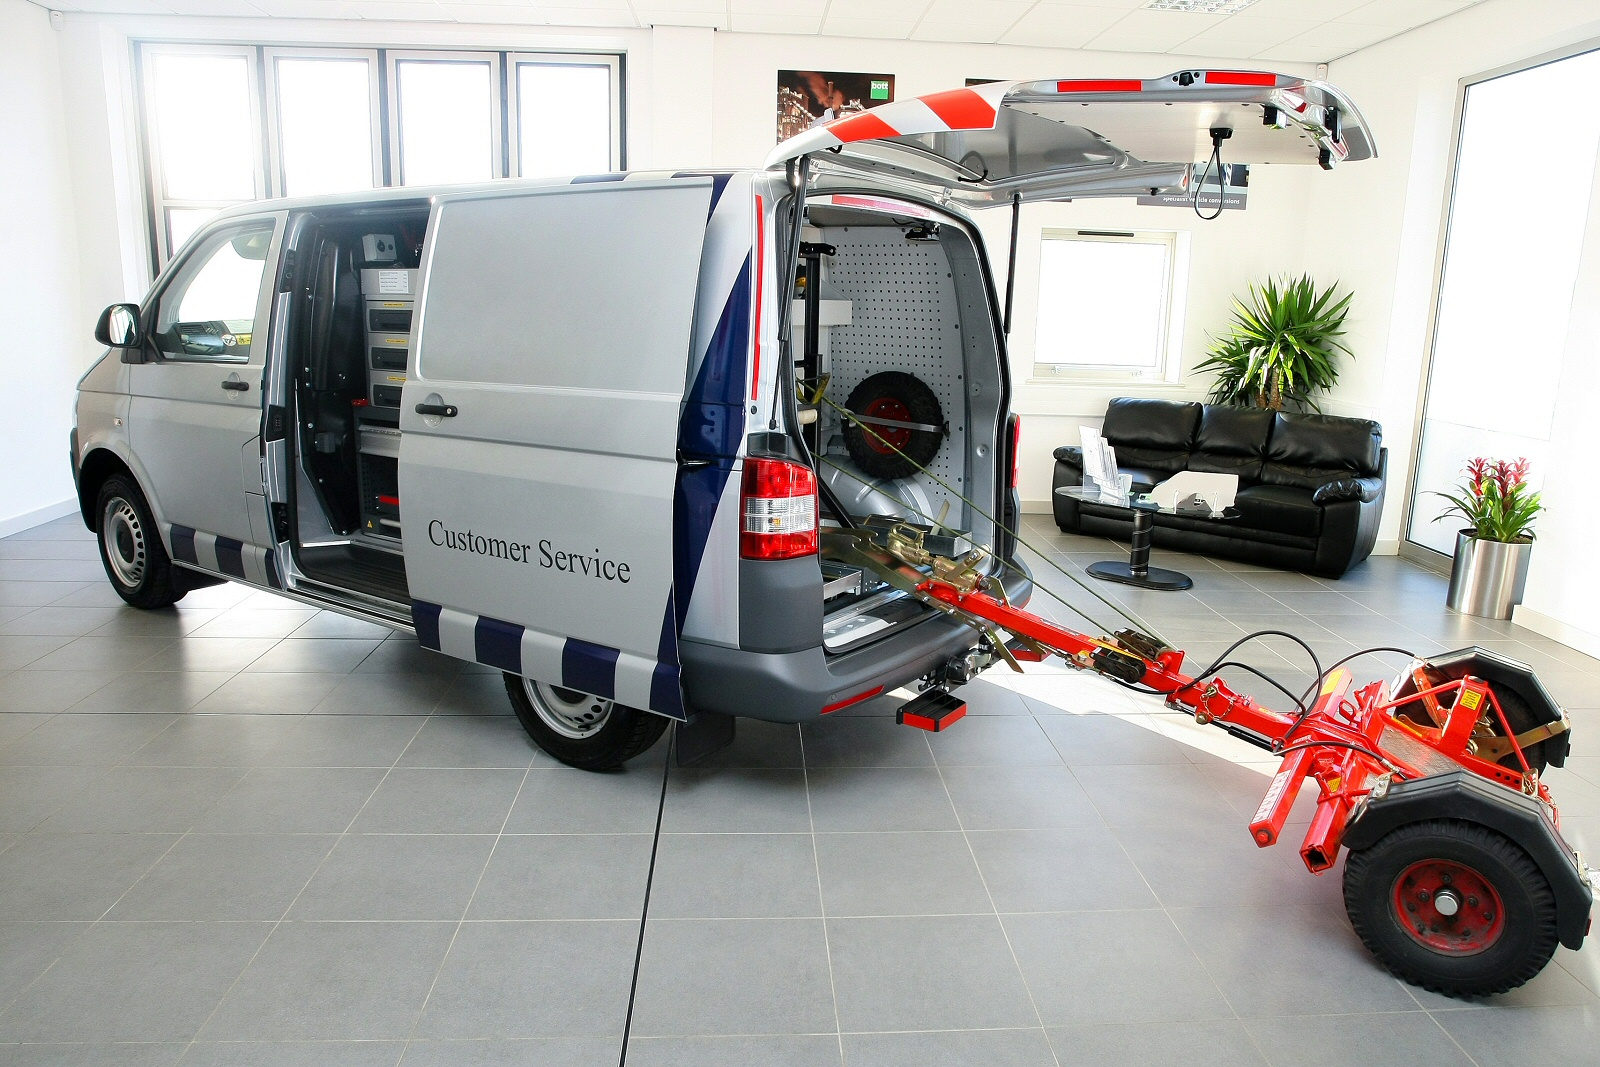 Image three of a Volkswagen Transporter van range